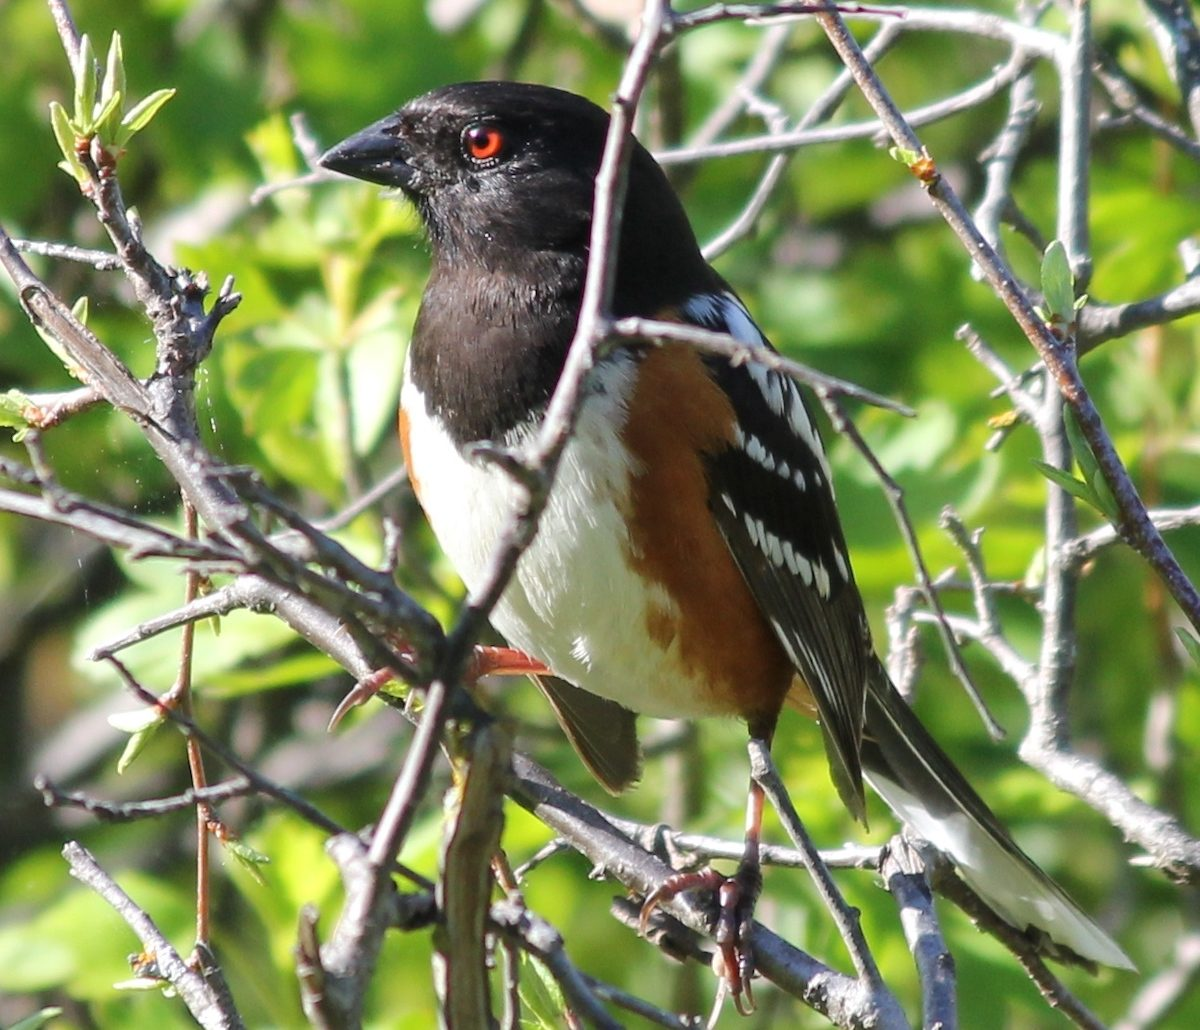 spotted towhee, birds that look like orioles